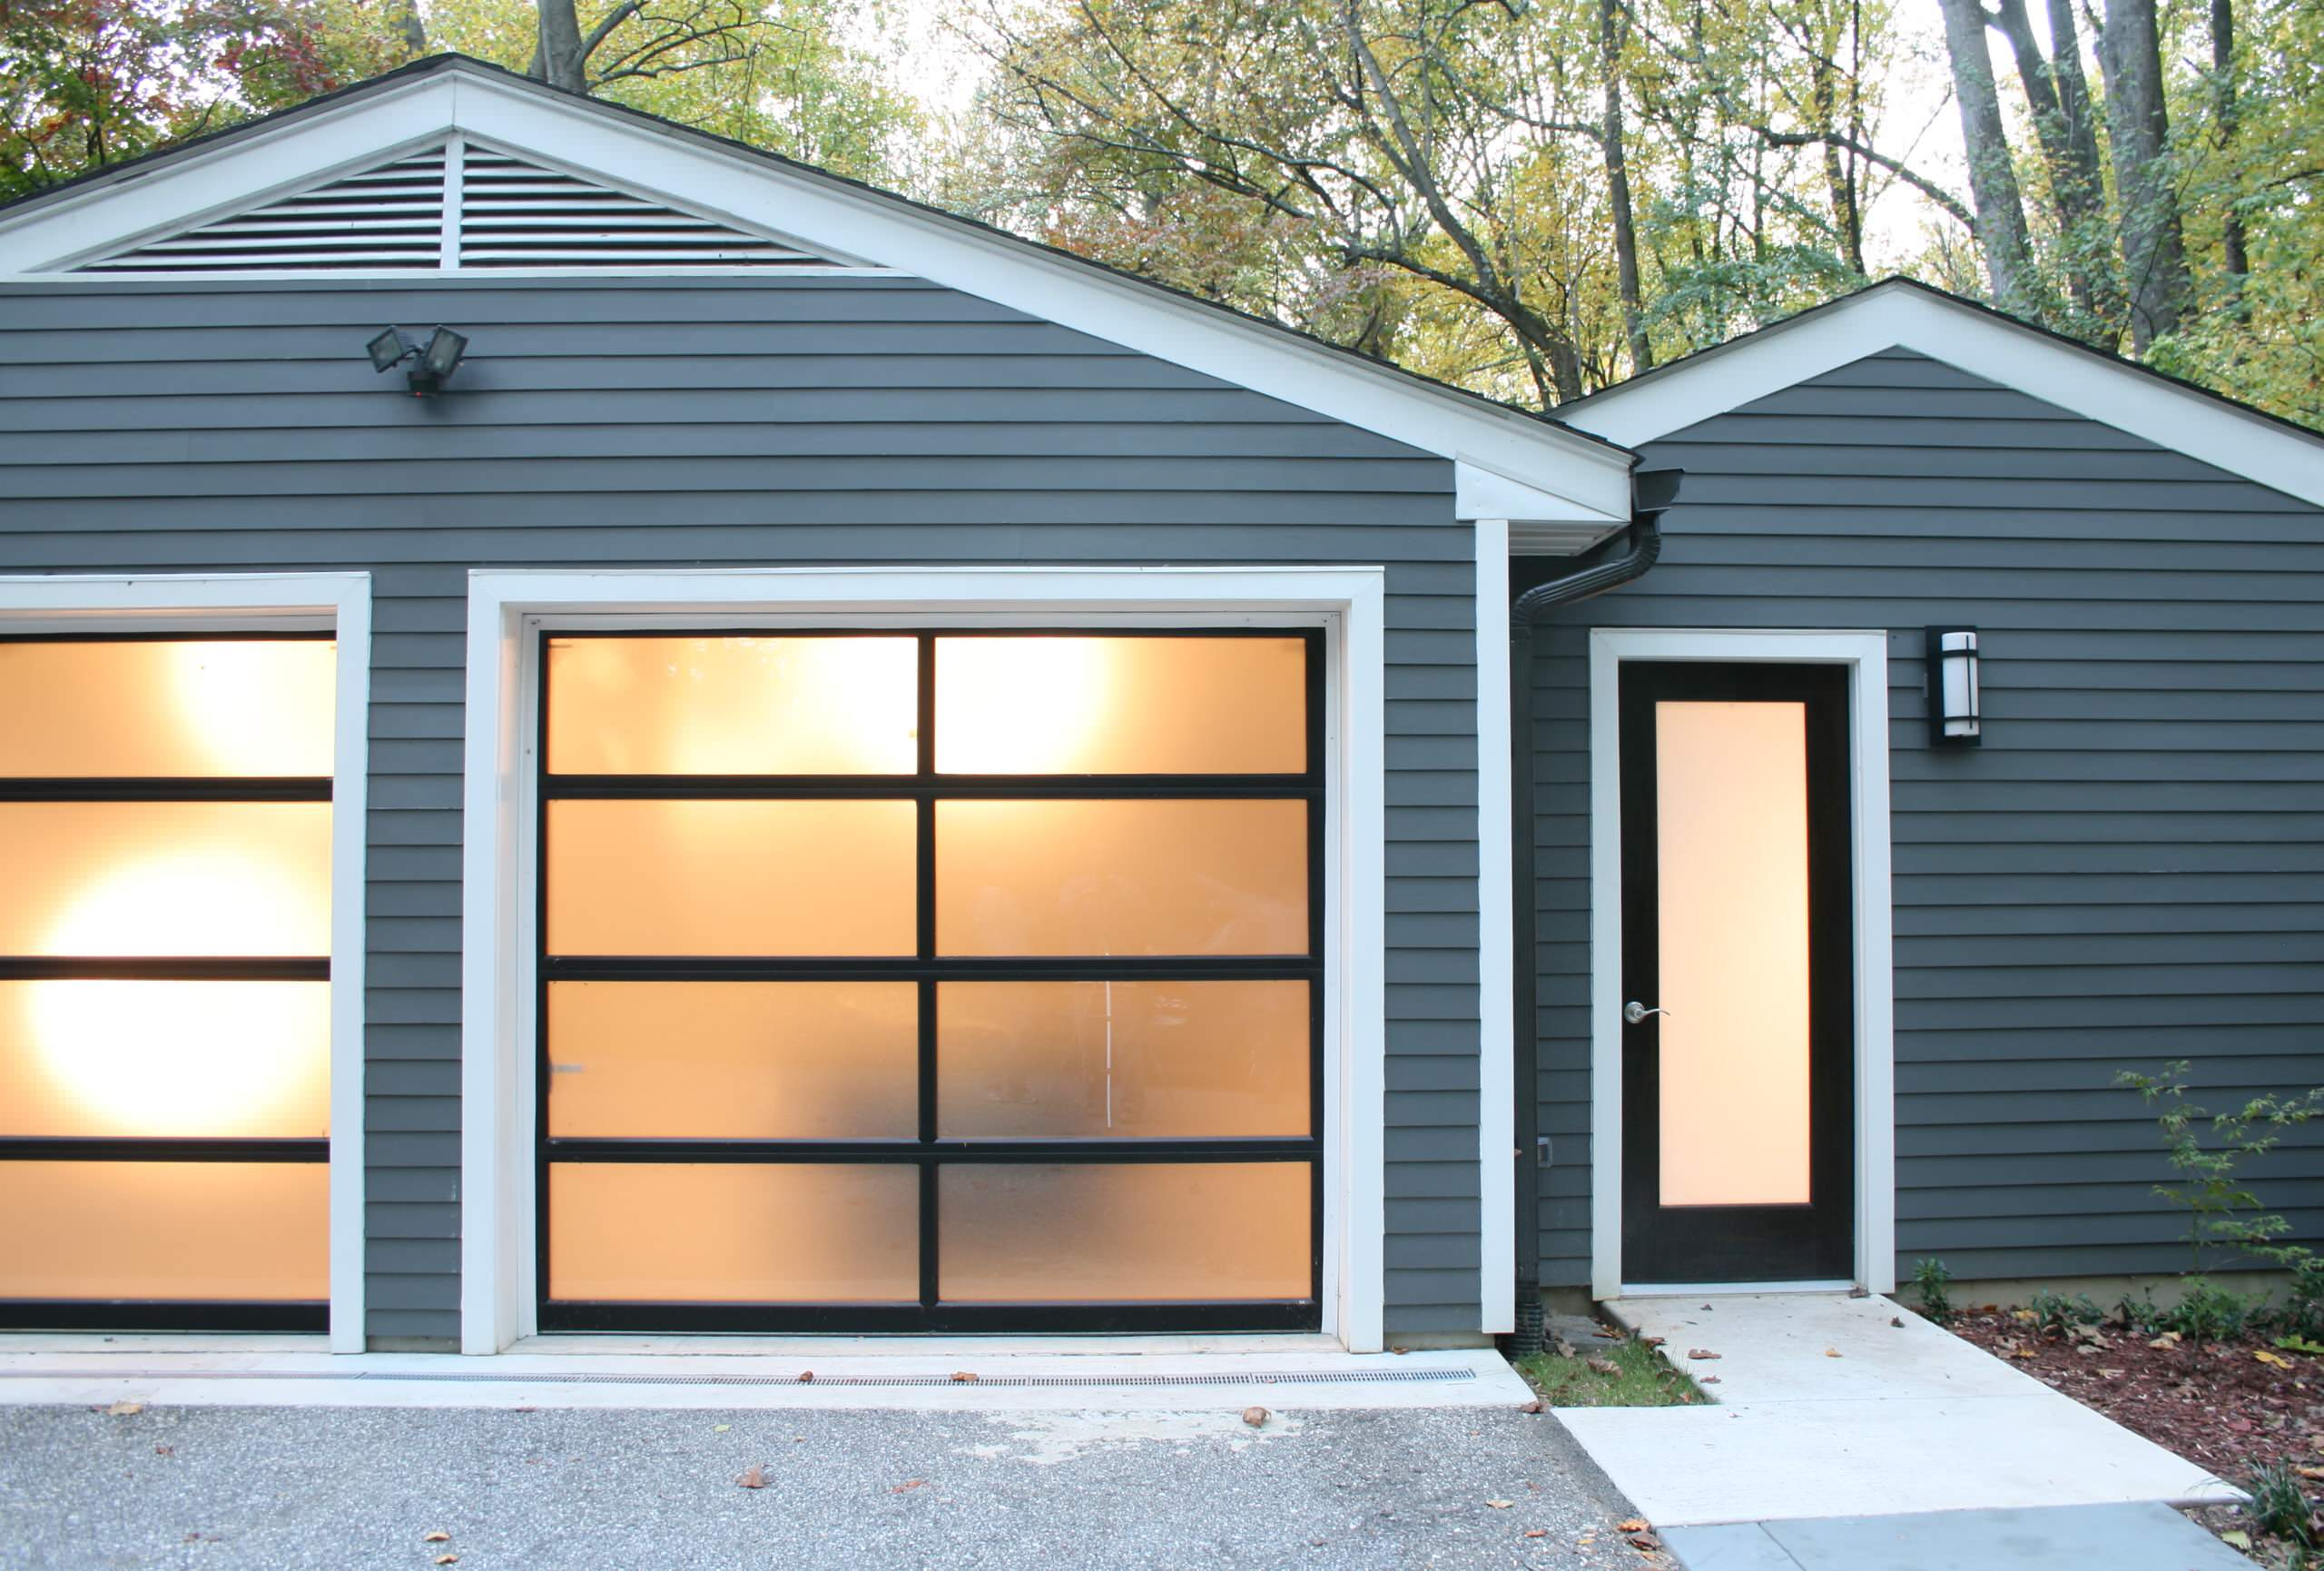 75 Beautiful Detached Garage Pictures Ideas November 2020 Houzz